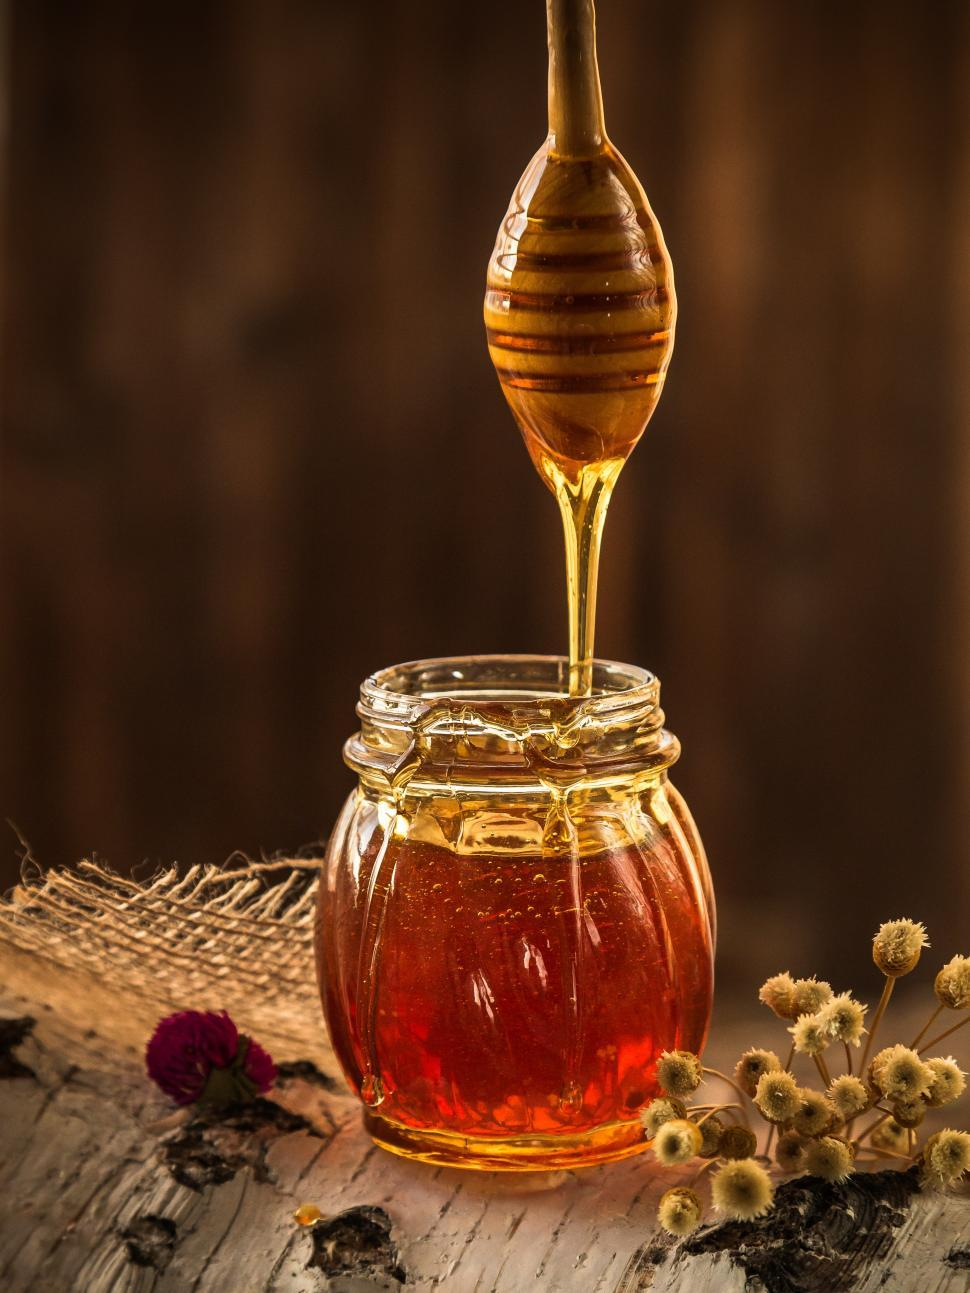 Download Free Stock Photo of Honey dripping from dripper into the glass jar